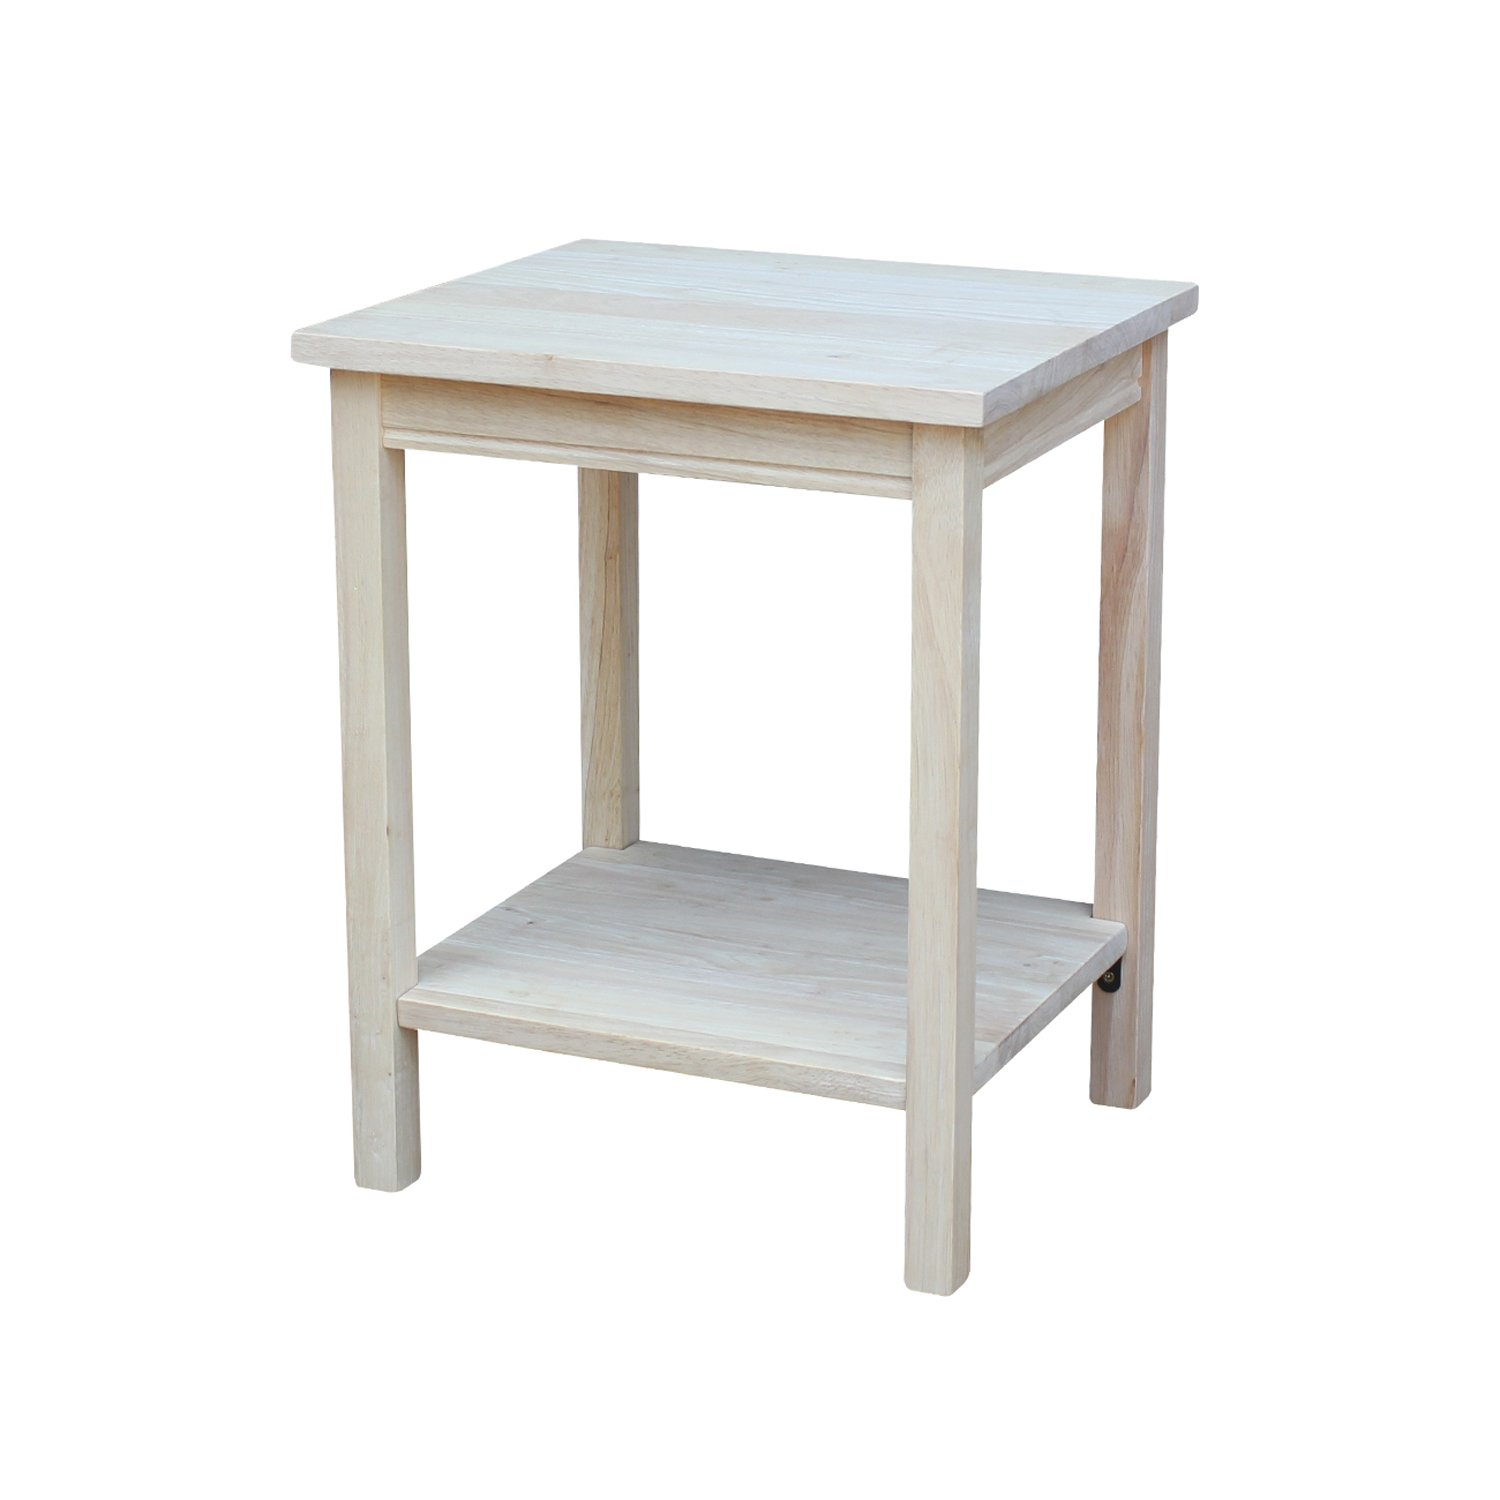 international concepts accent table unfinished round cardboard kitchen dining side cover berg furniture high bar oval antique slim white clearance bedding living room end tables